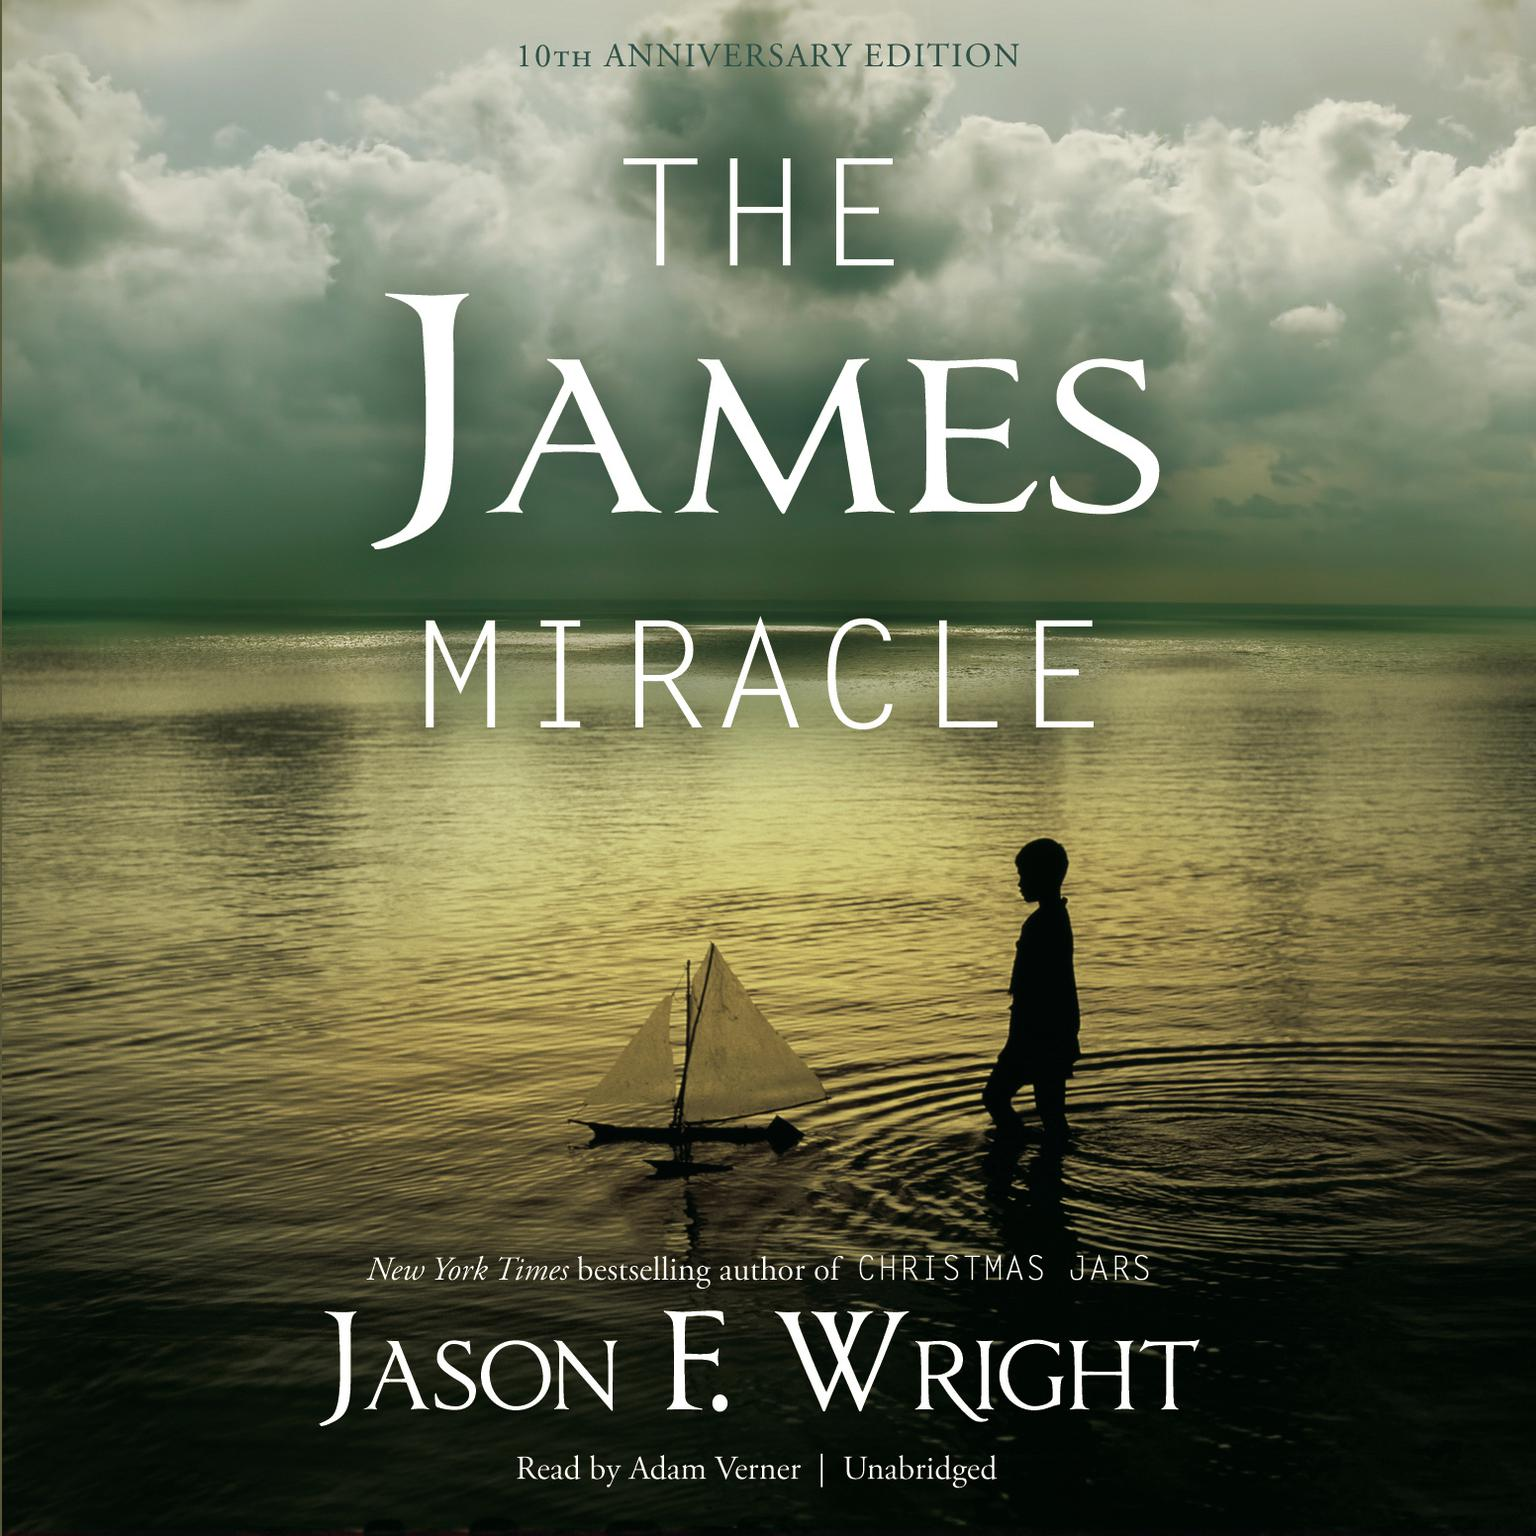 Printable The James Miracle, Tenth Anniversary Edition Audiobook Cover Art